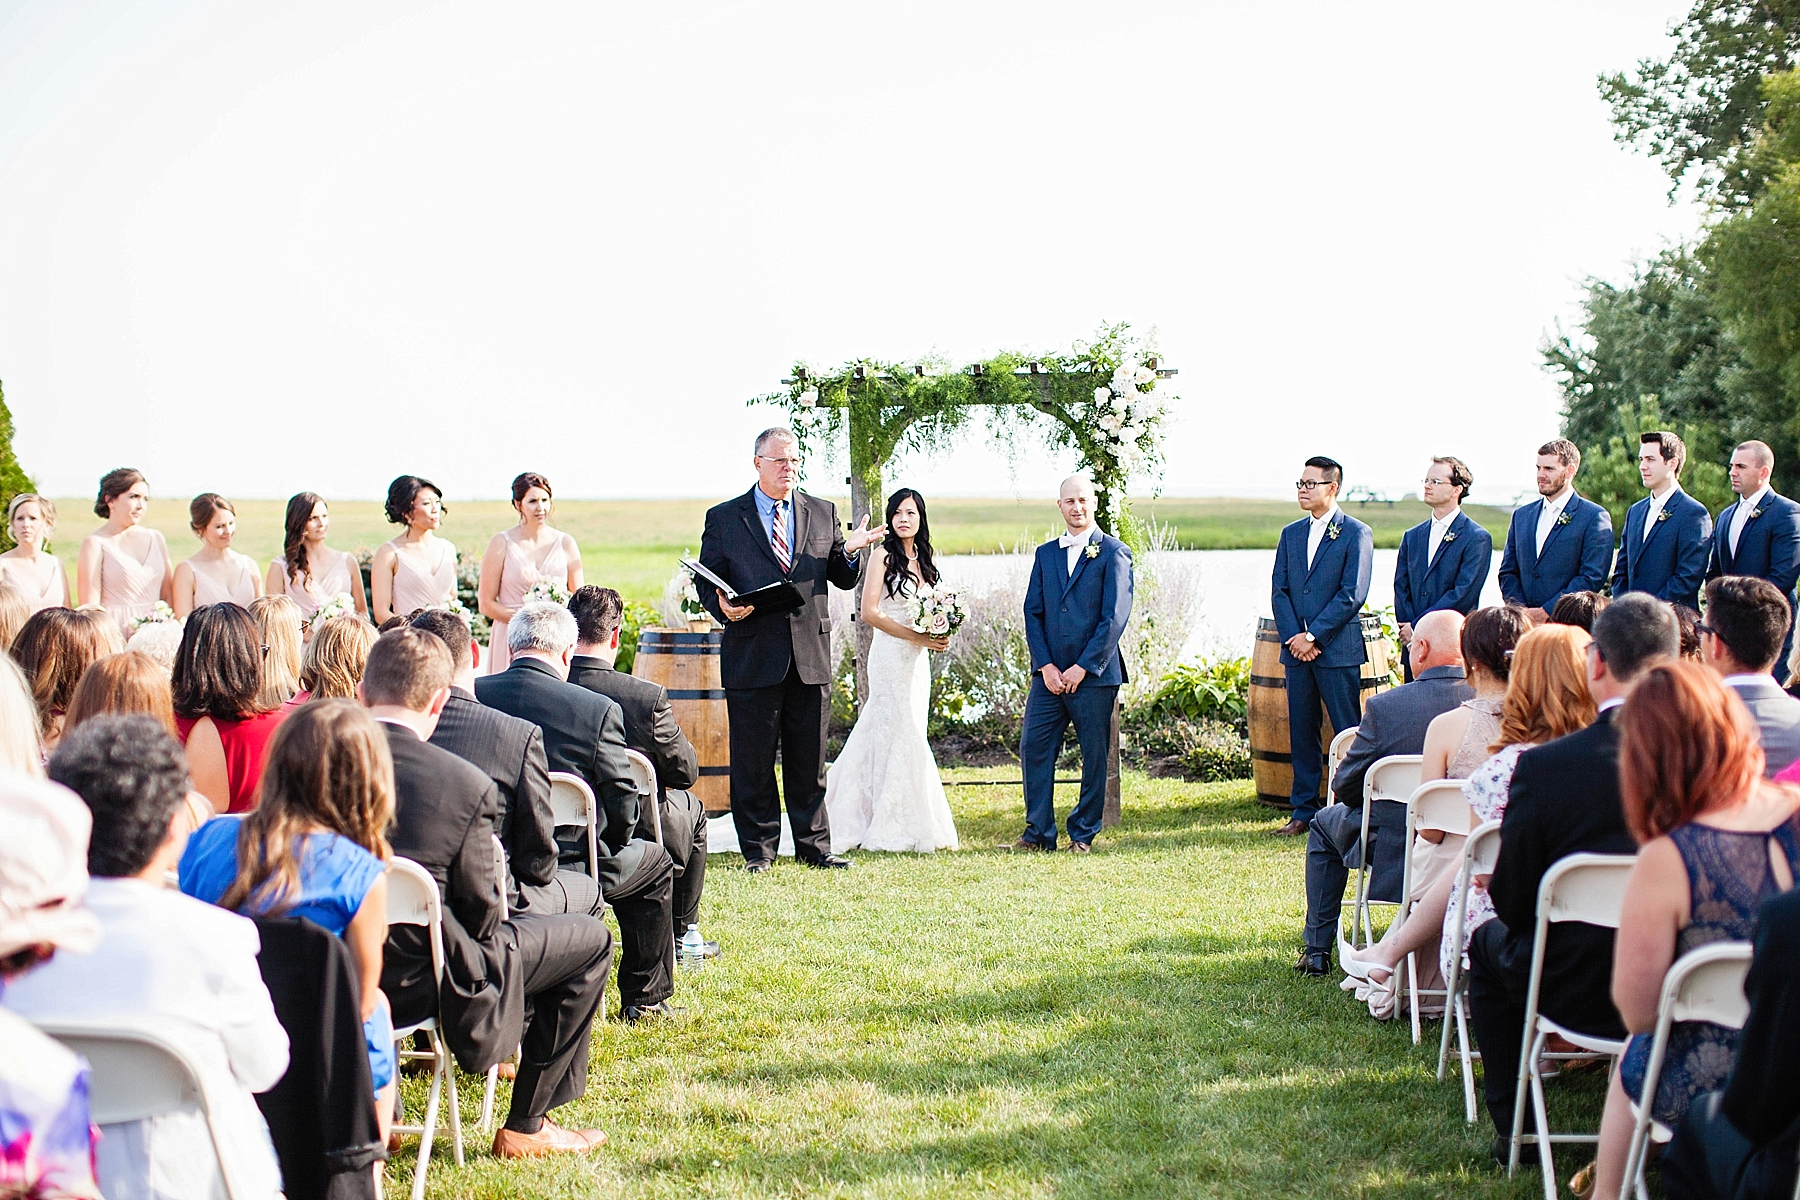 windsor-wedding-photographer-winery-wedding-ontario-sprucewood-shores-niagara-on-the-lake-wedding-photography-eryn-shea-photography_0040.jpg